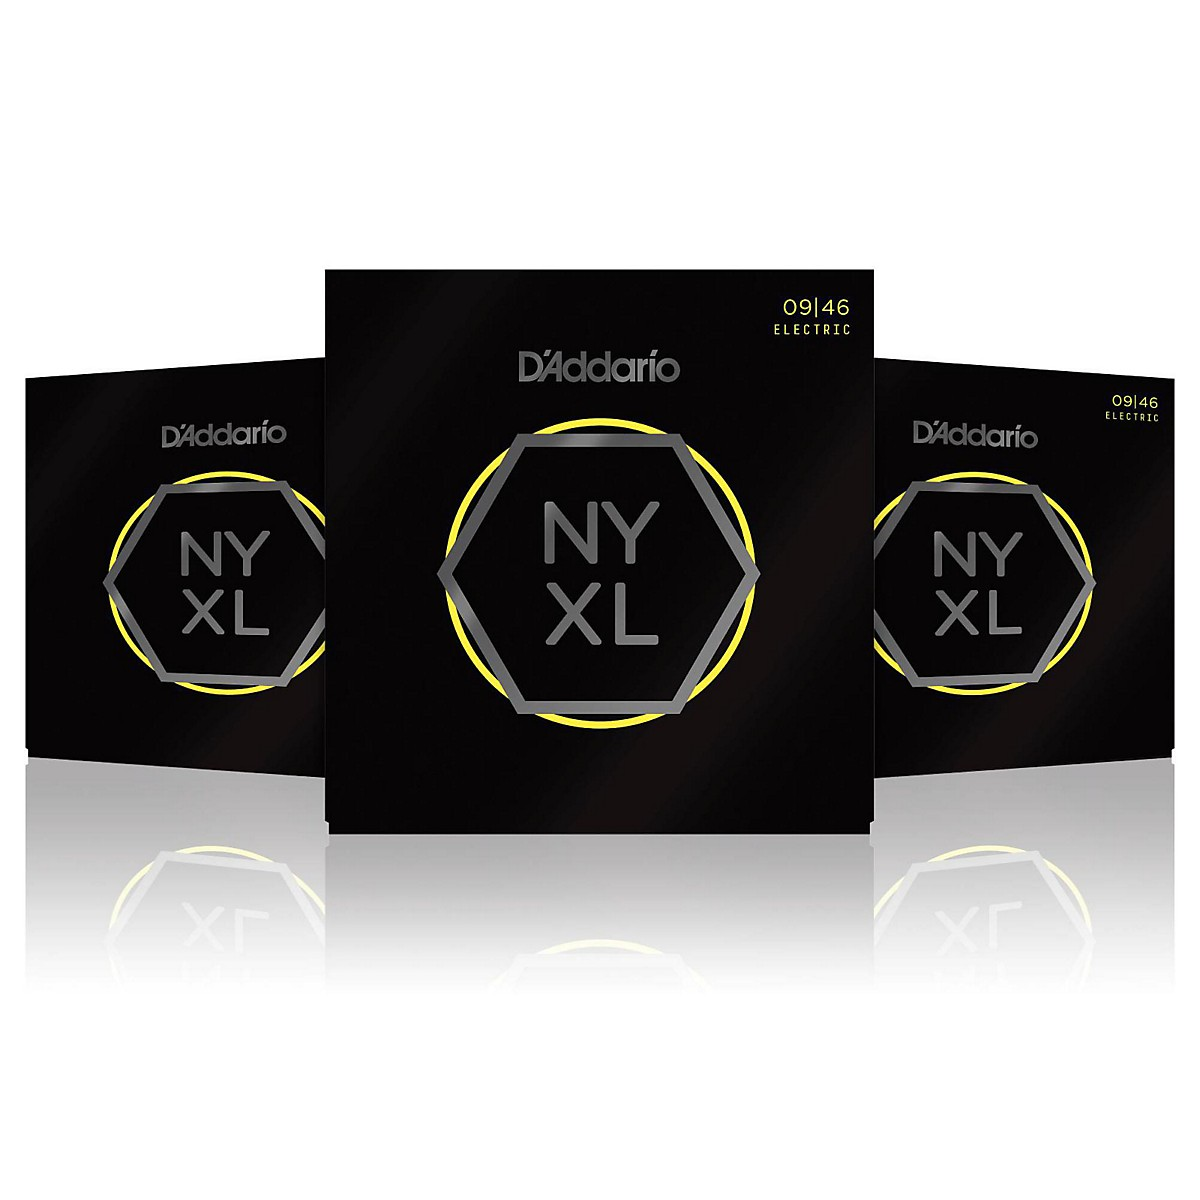 D'Addario NYXL0946 Super Light Top/Regular Bottom 3-Pack Electric Guitar Strings